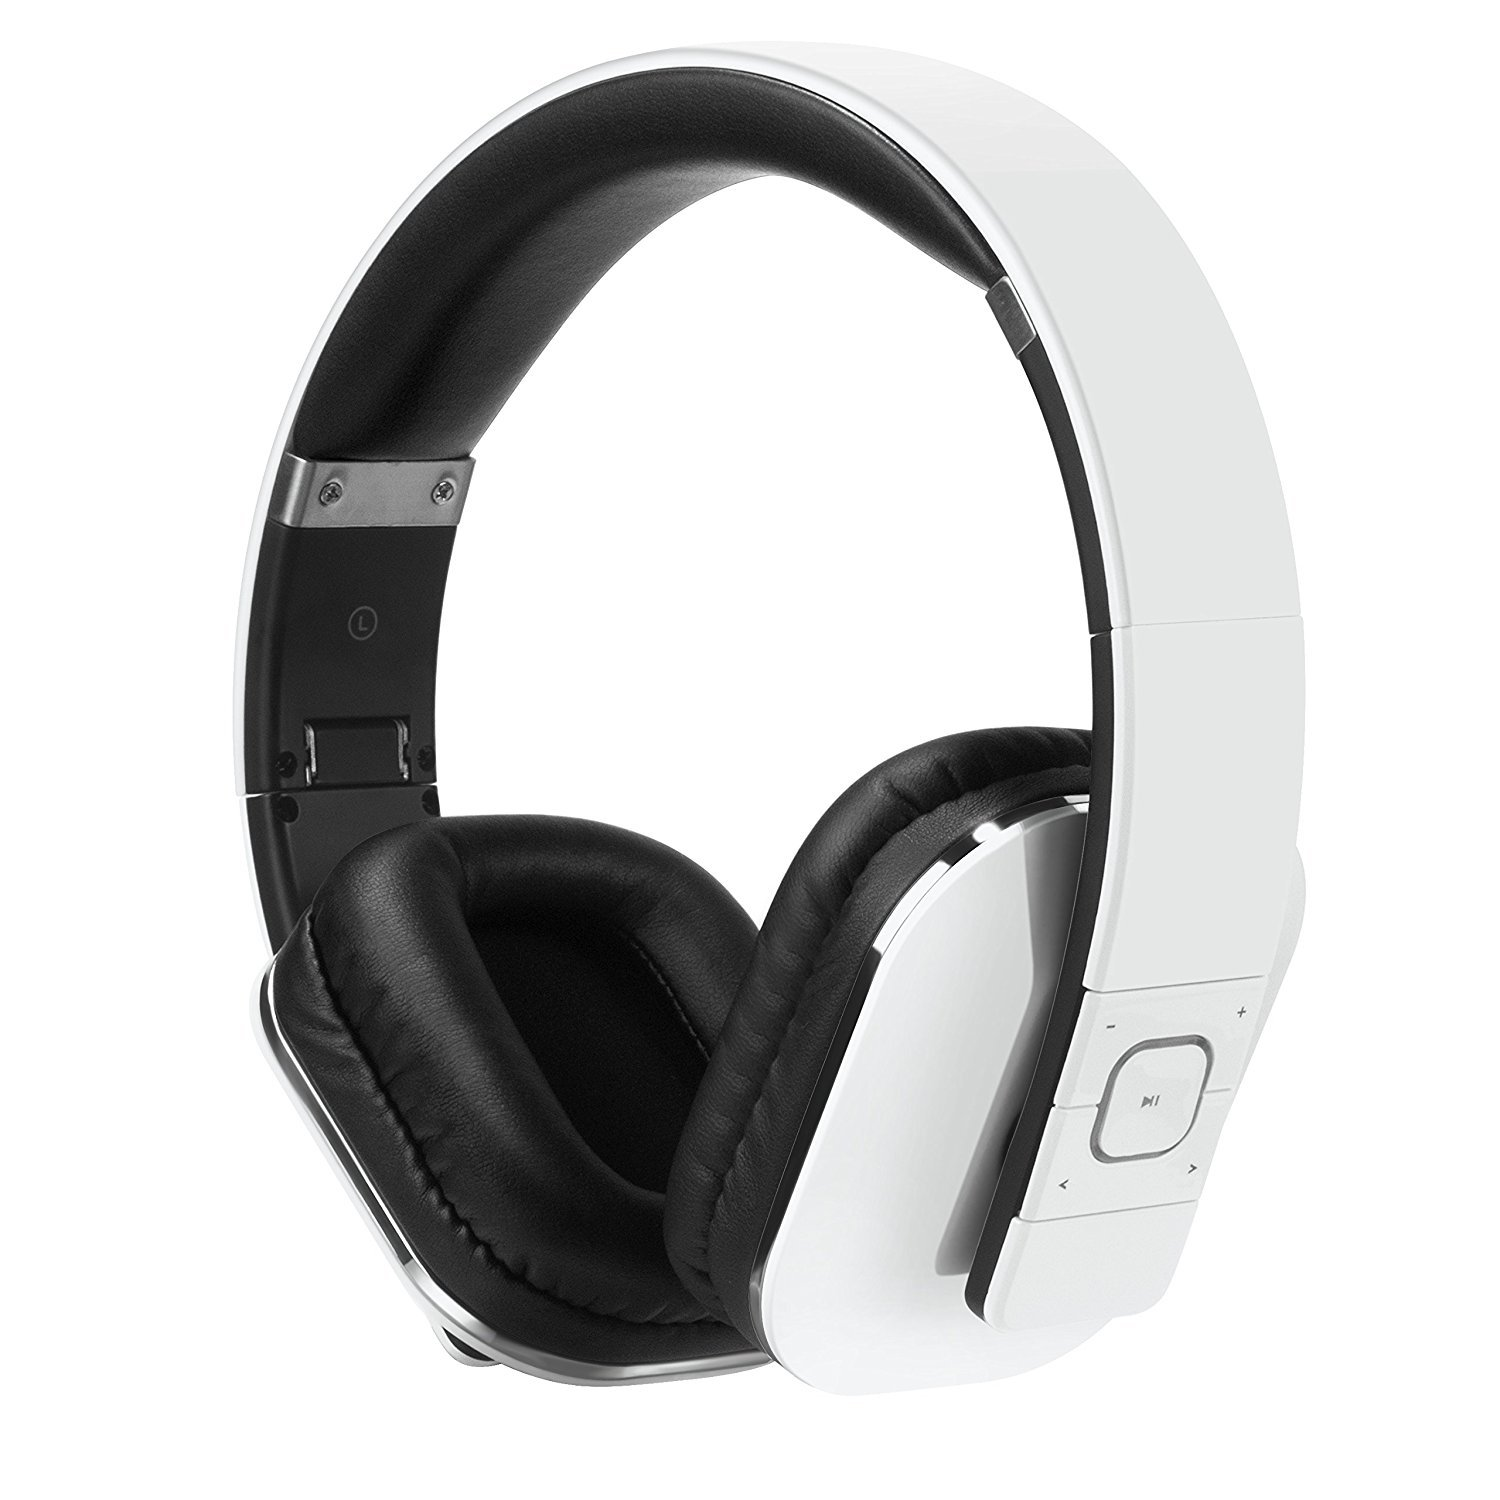 August EP650 Bluetooth Over Ear Wireless Stereo NFC 3.5mm Headphones with Rechargeable Battery, Audio In Socket, Multipoint and Built-in Microphone for Mobile Phones, iPhone, iPad, Laptops, Tablets, Smartphones – White